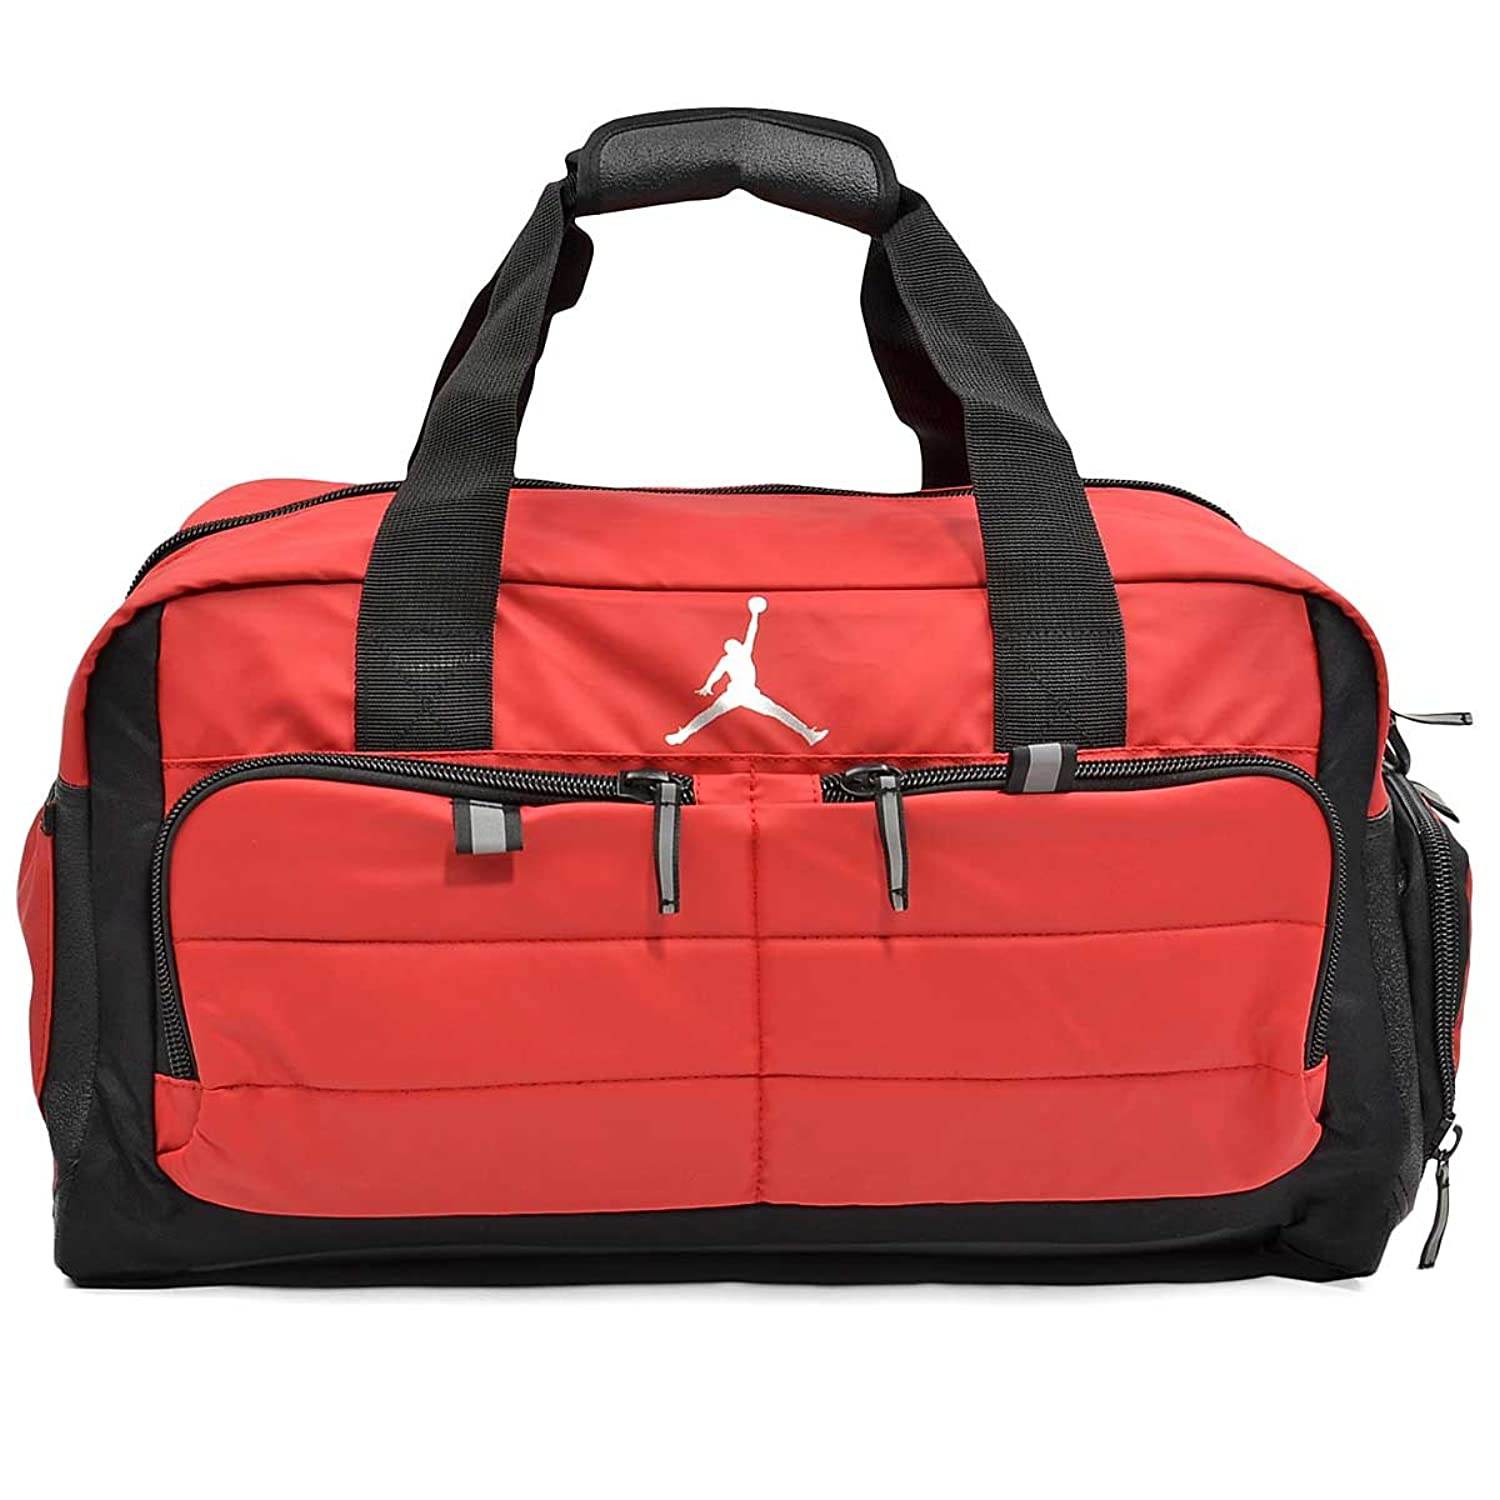 4ba4034048 Nike Air Jordan Jumpman Trainer Duffle Gym Bag